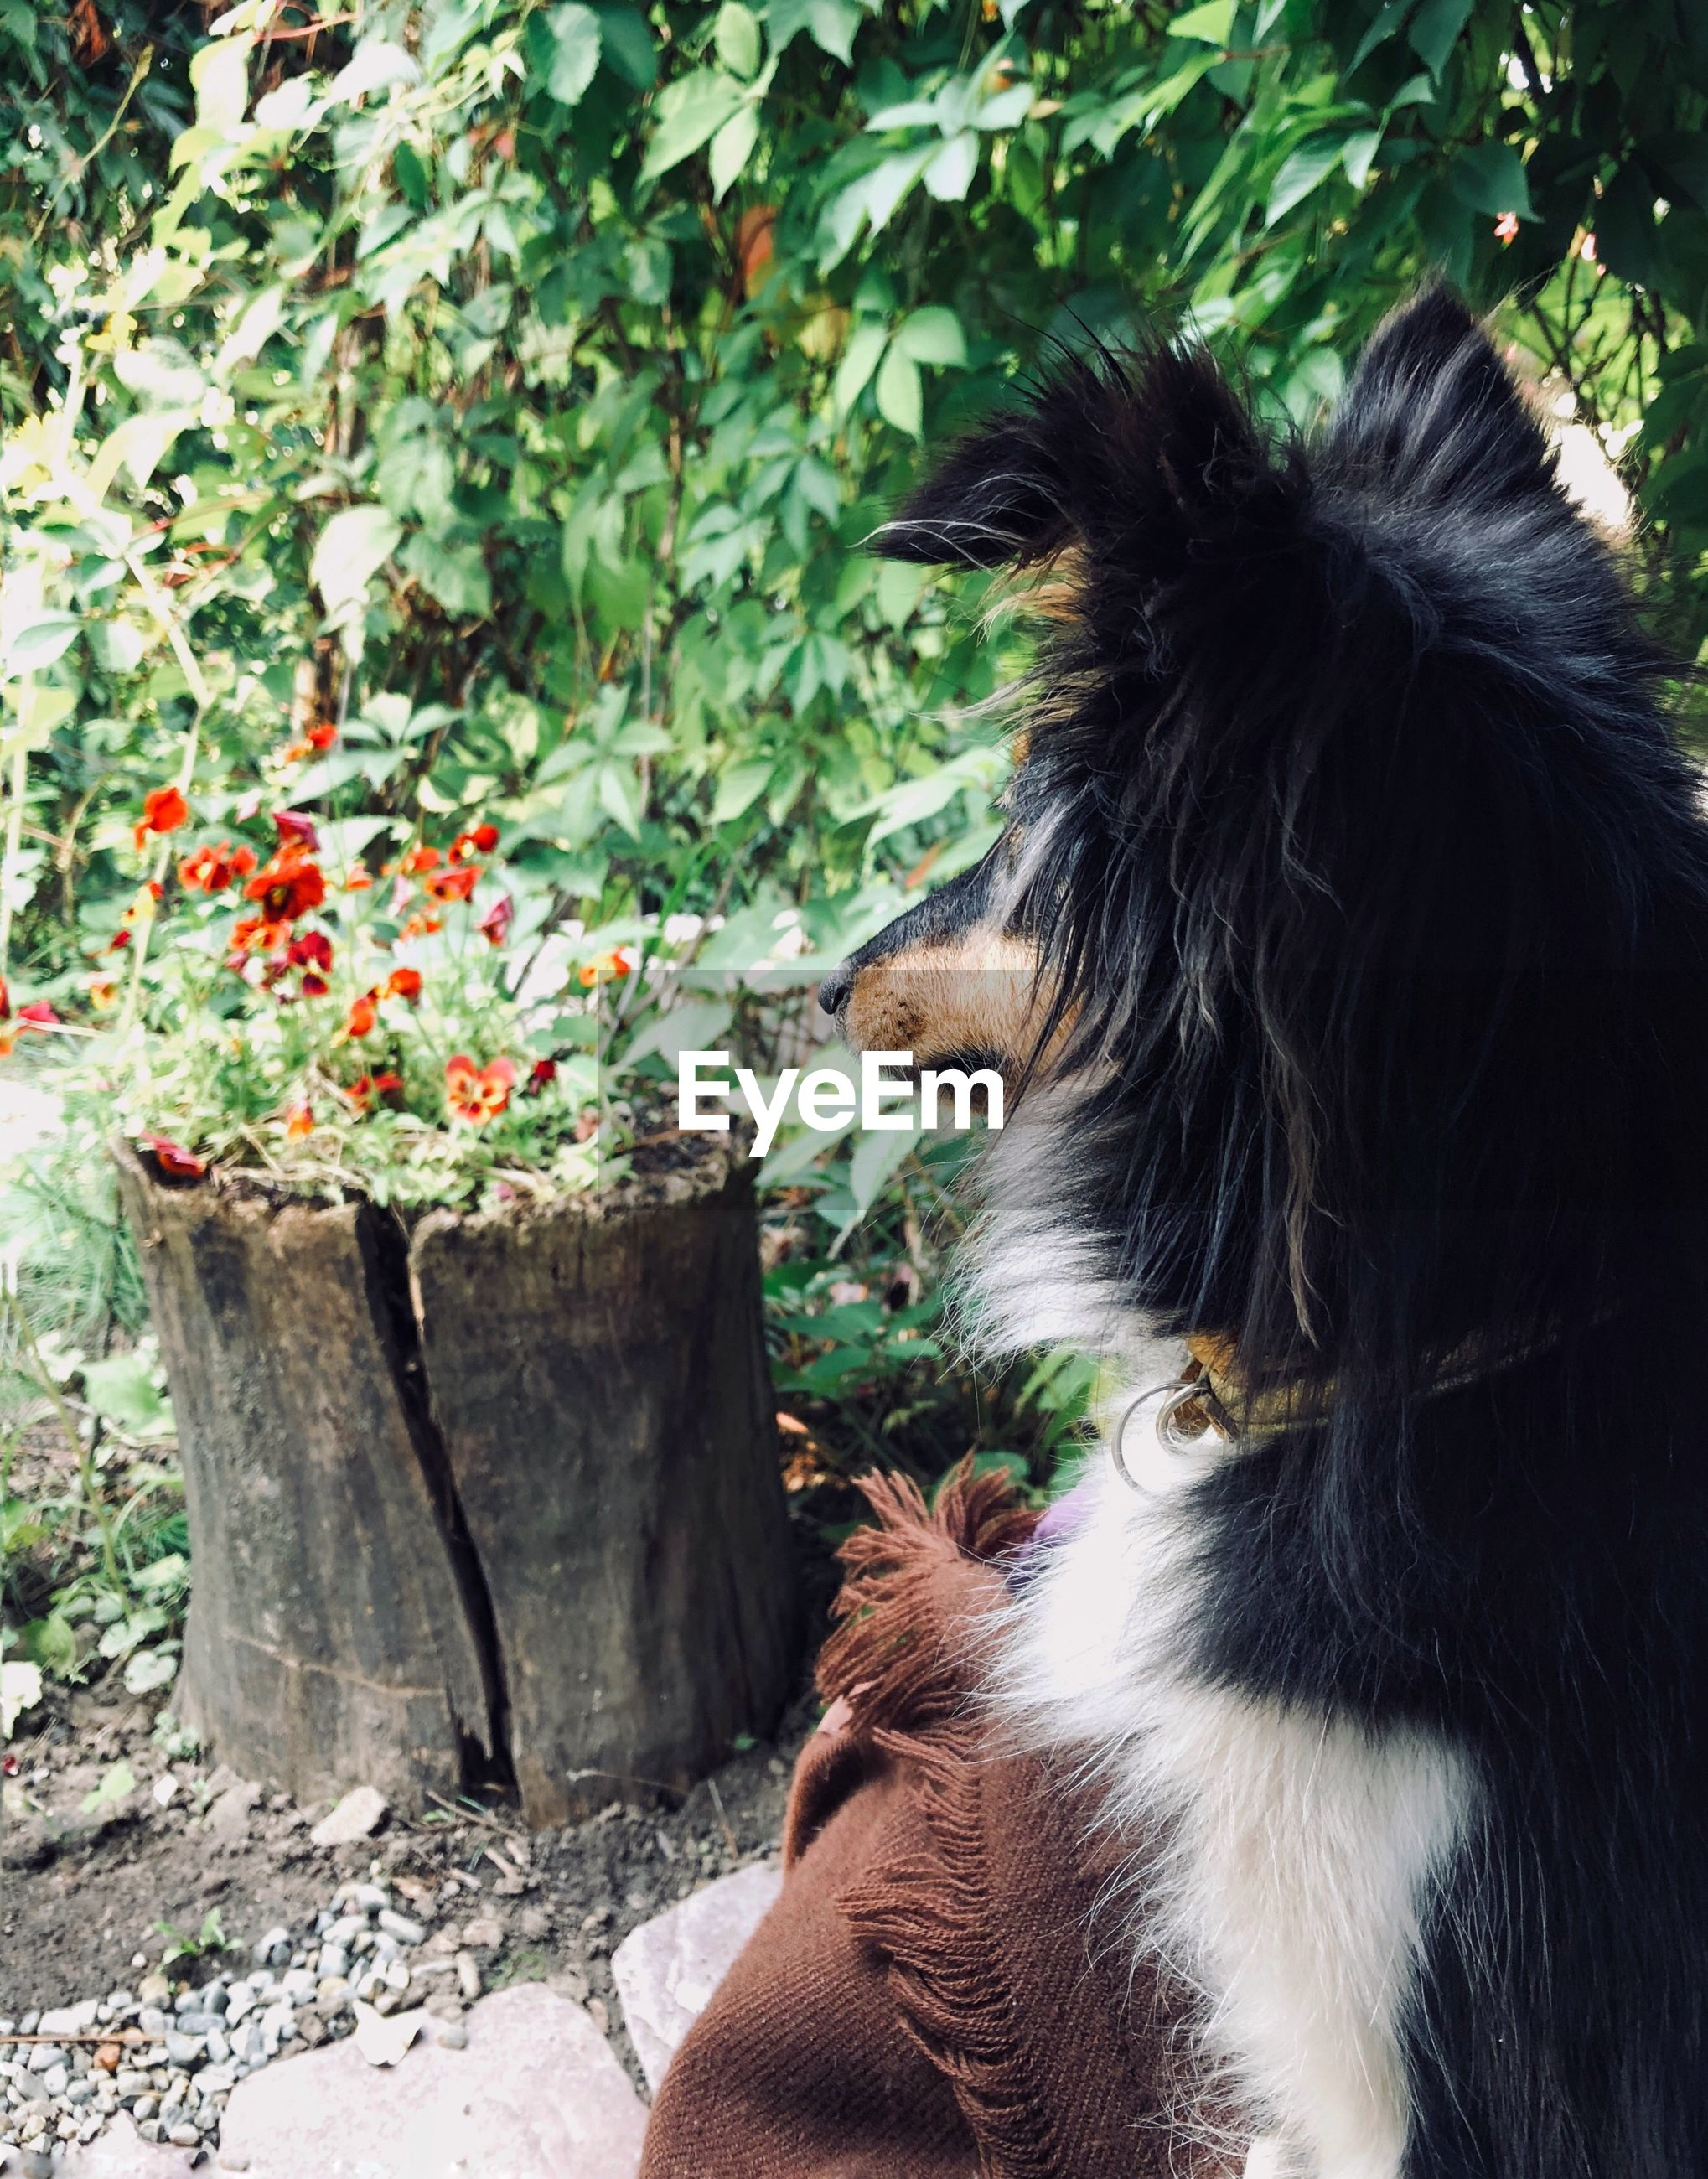 REAR VIEW OF PERSON WITH DOG AGAINST PLANTS